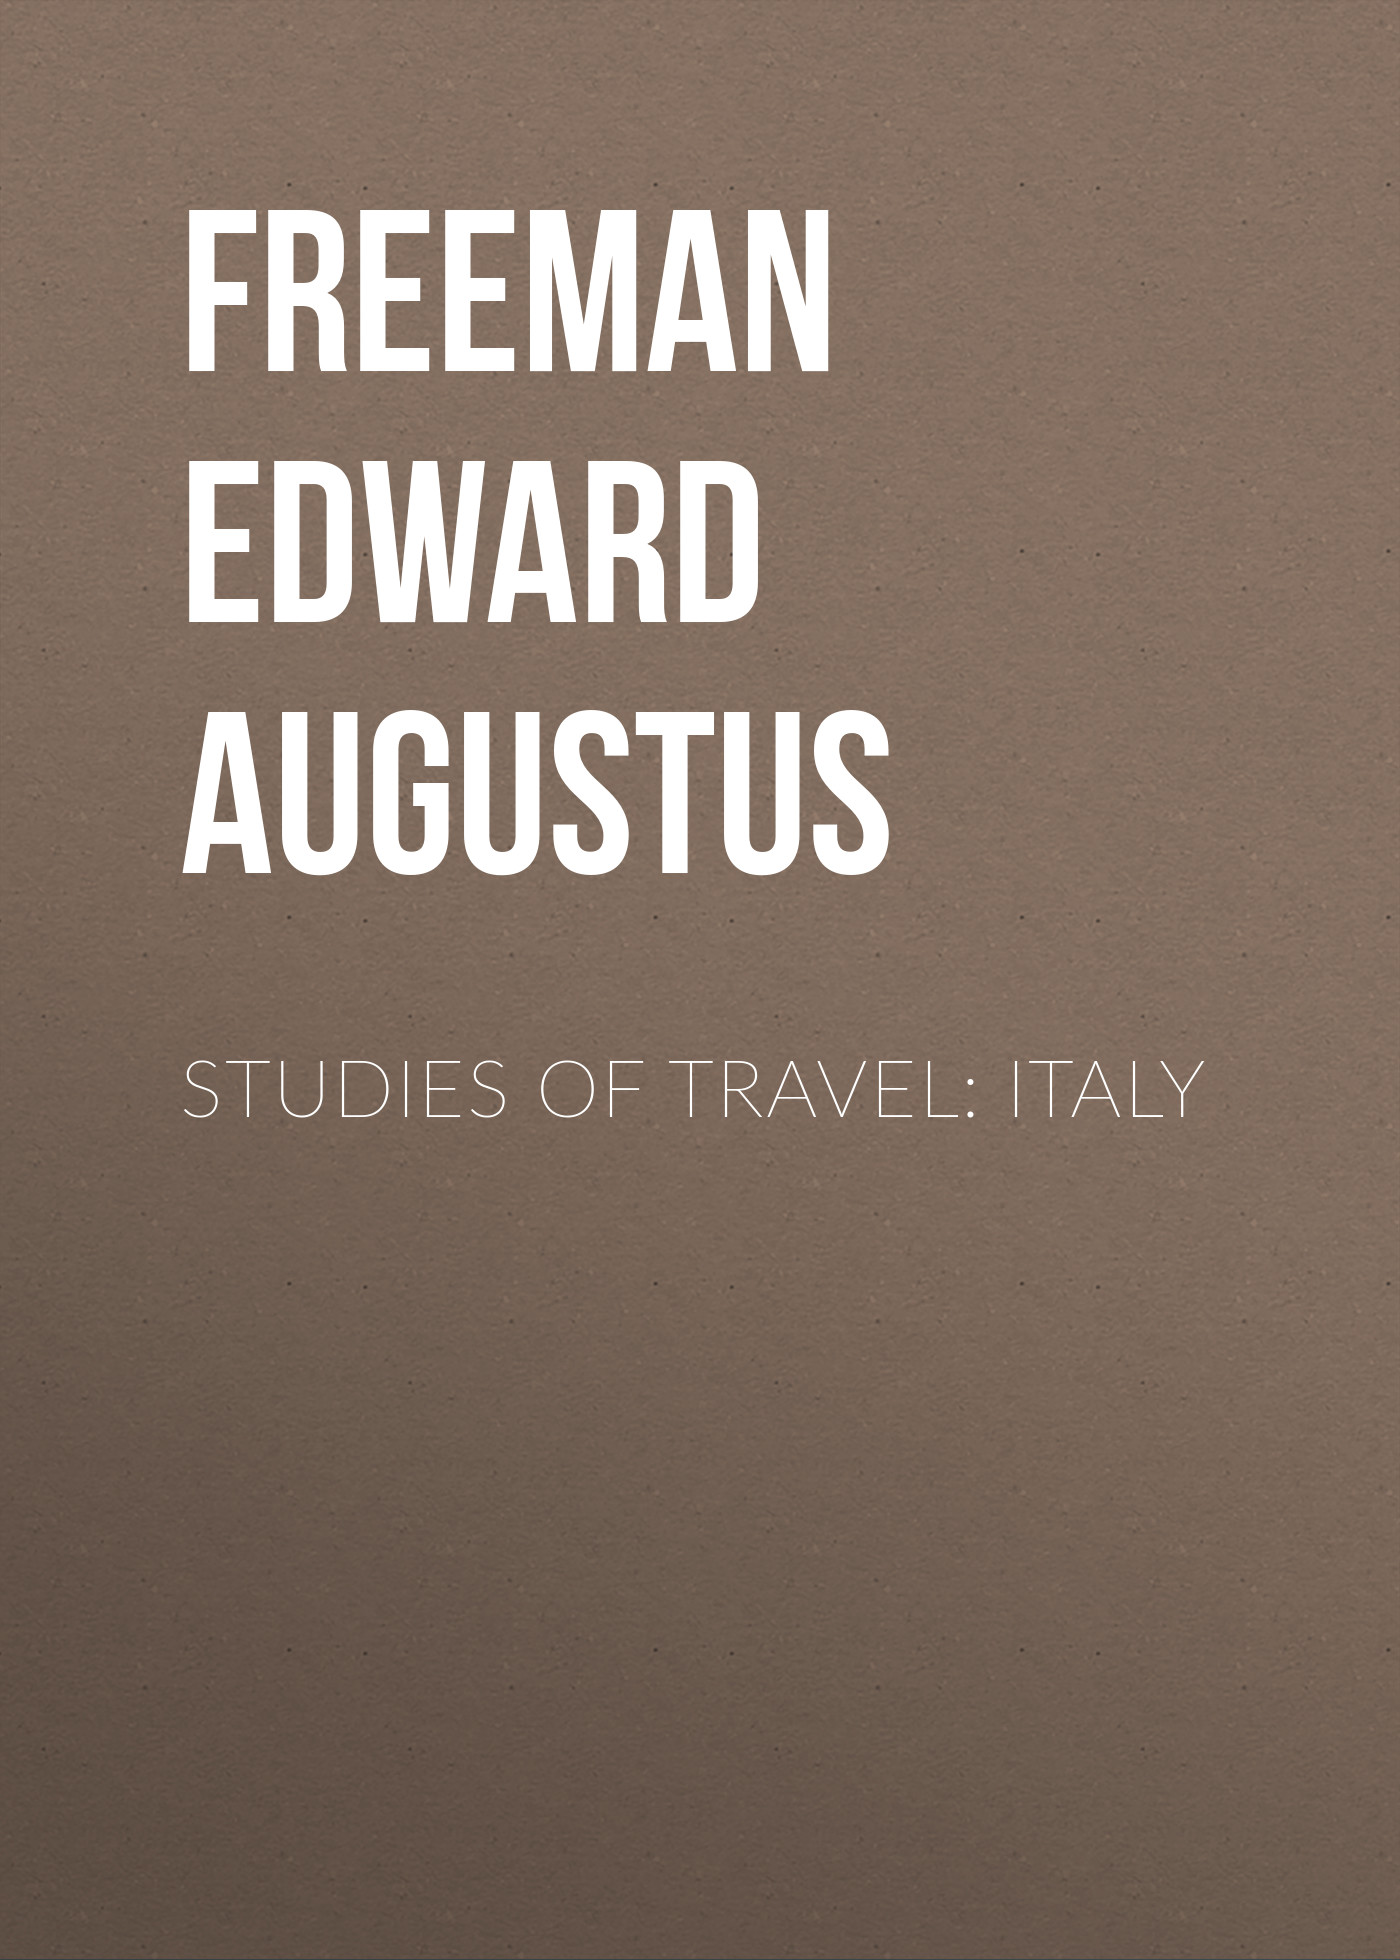 Freeman Edward Augustus Studies of Travel: Italy r austin freeman osirise silm